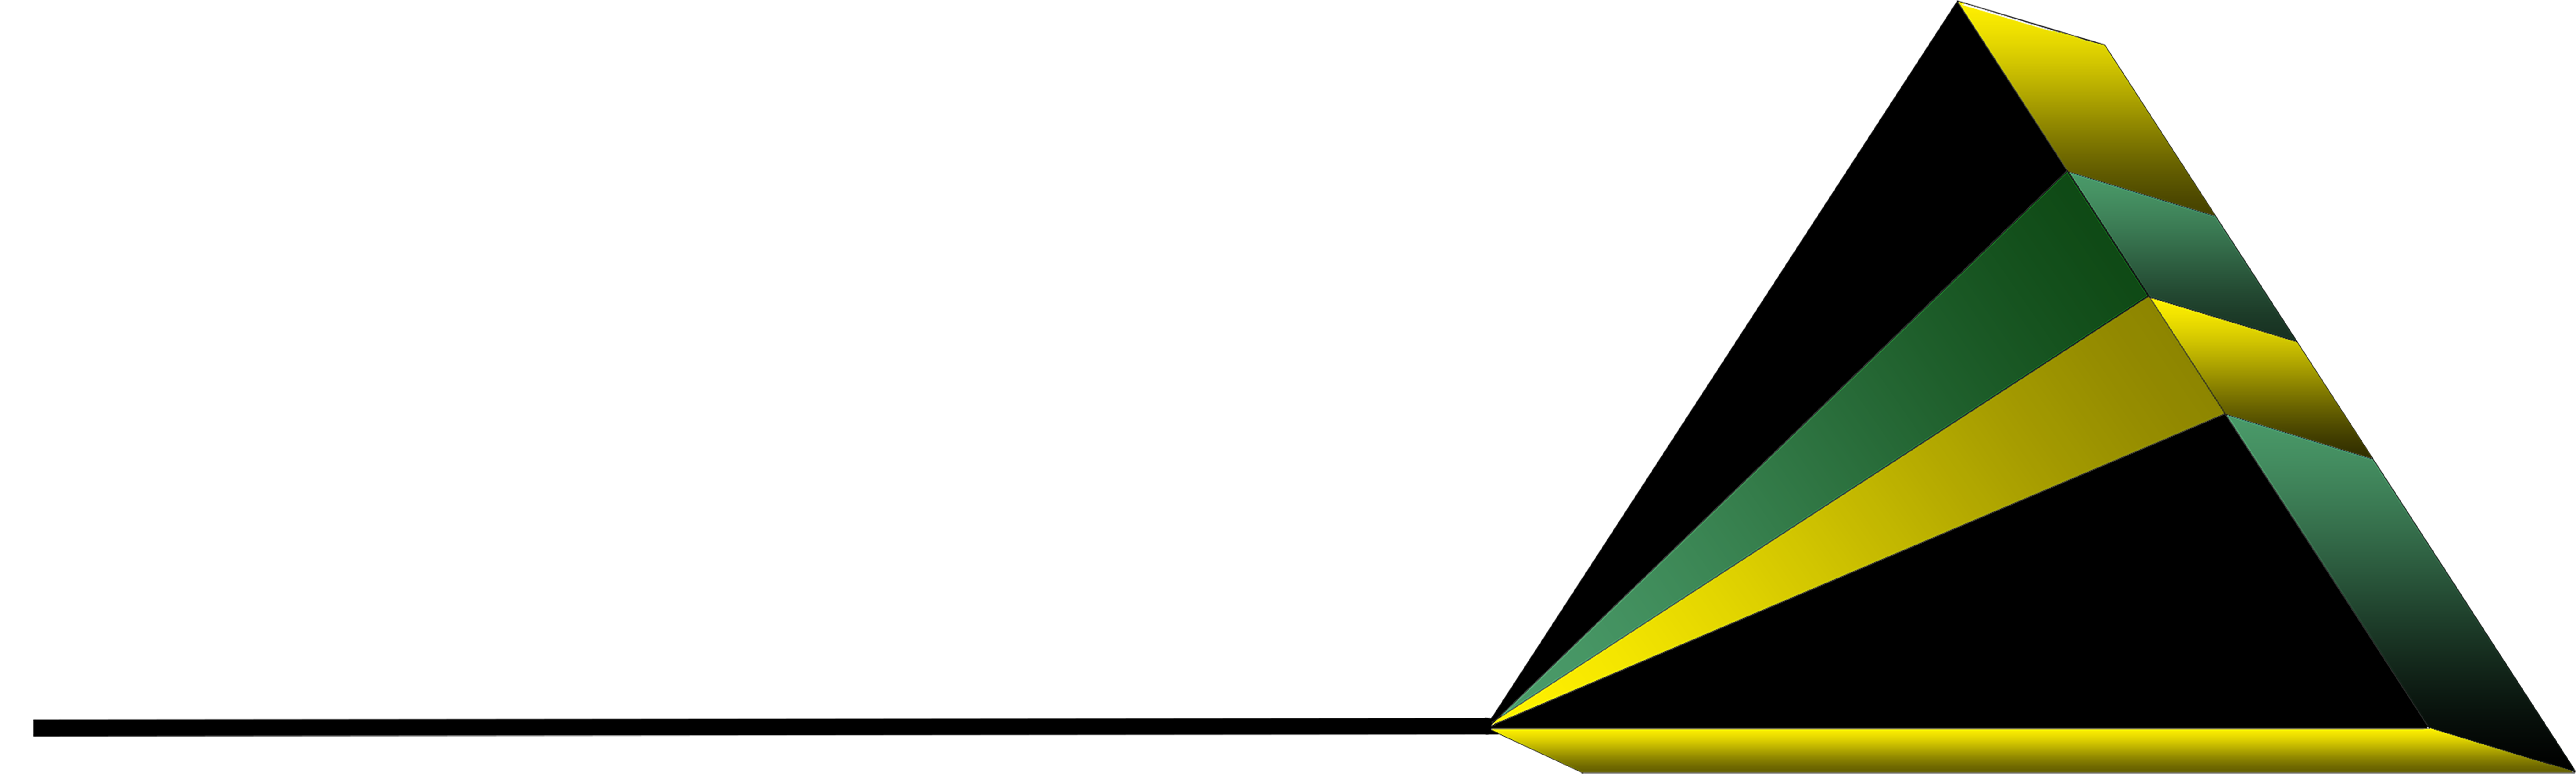 Spectrum Camera Solutions Logo with white letters and colored prism